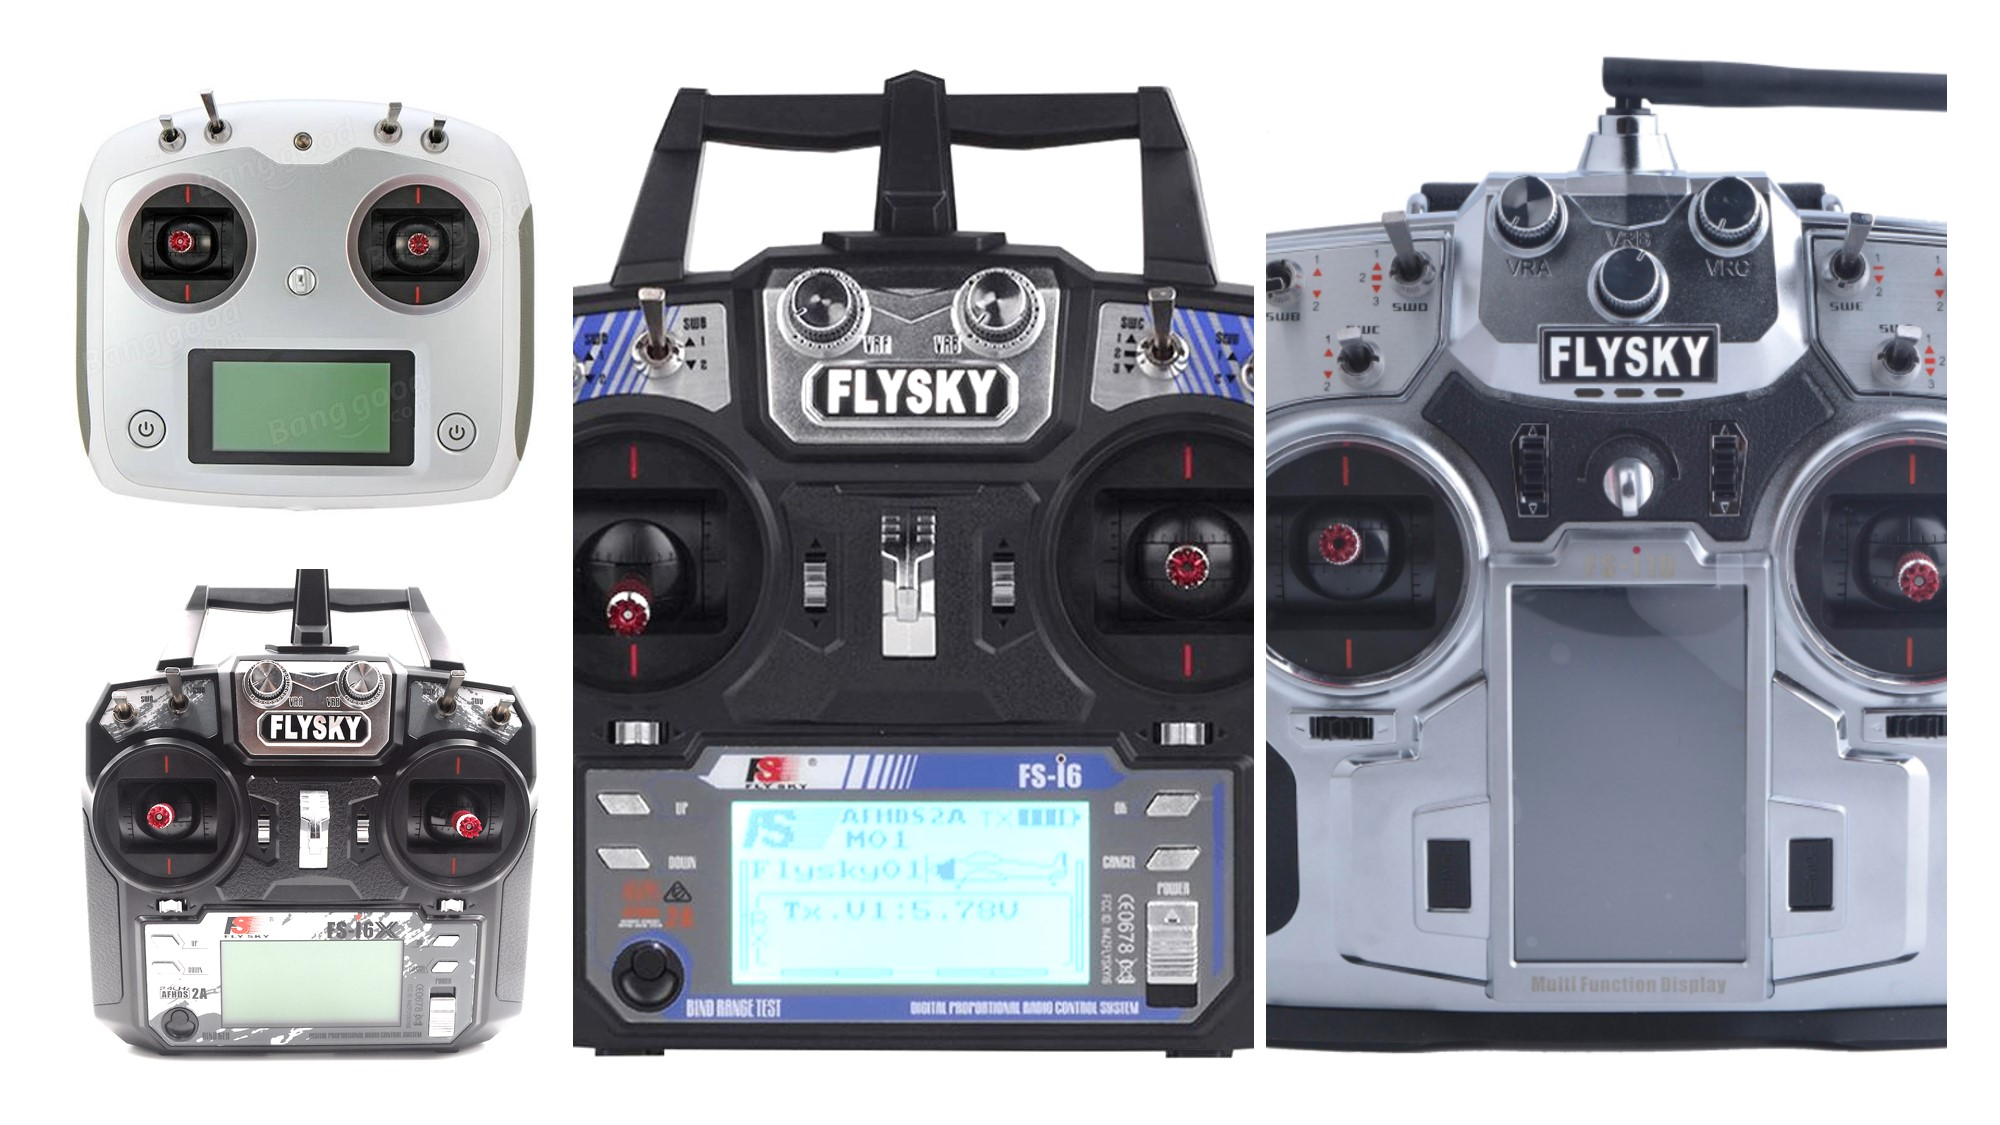 Flysky Radios 🎮 and Receivers 📻 for FPV Quadcopters – Which One Should You Buy?